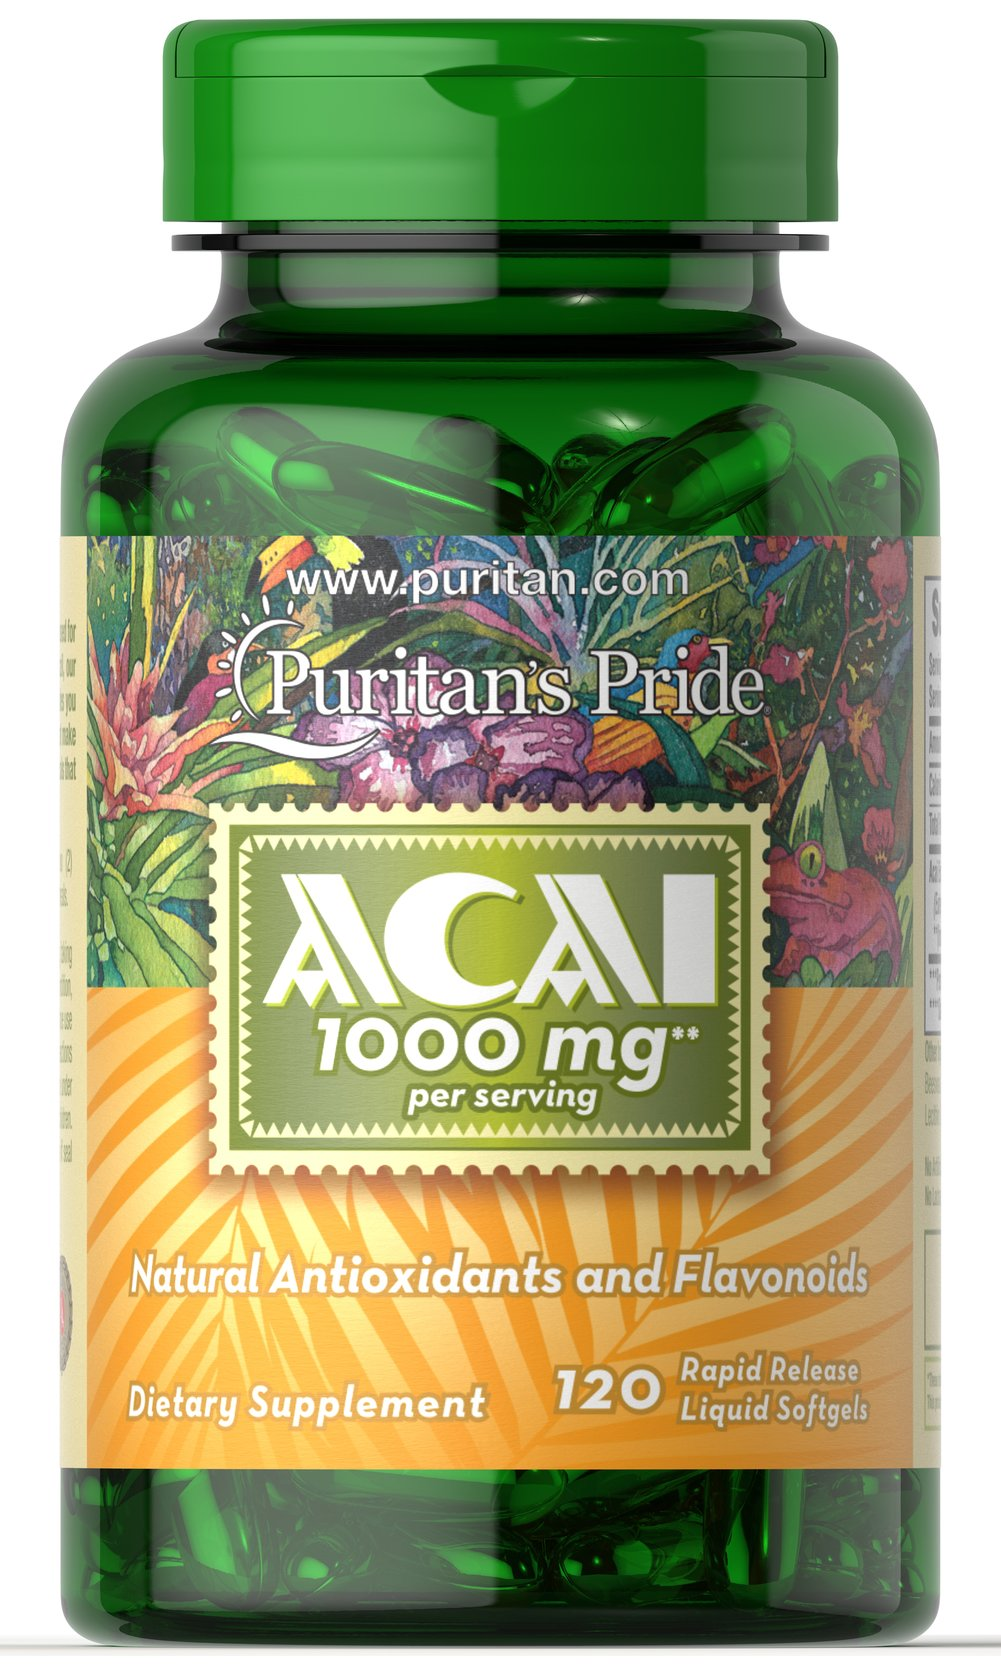 Acai 1000 mg Rapid-release liquid softgels <p></p>Contains 1000 mg Acai per serving (two softgels)<p></p>Contains natural flavonoids and antioxidants<p></p>Supports overall well-being**<p></p>Helps enrich the vitality of your body and soul**<p></p> 120 Softgels 1000 mg $18.99